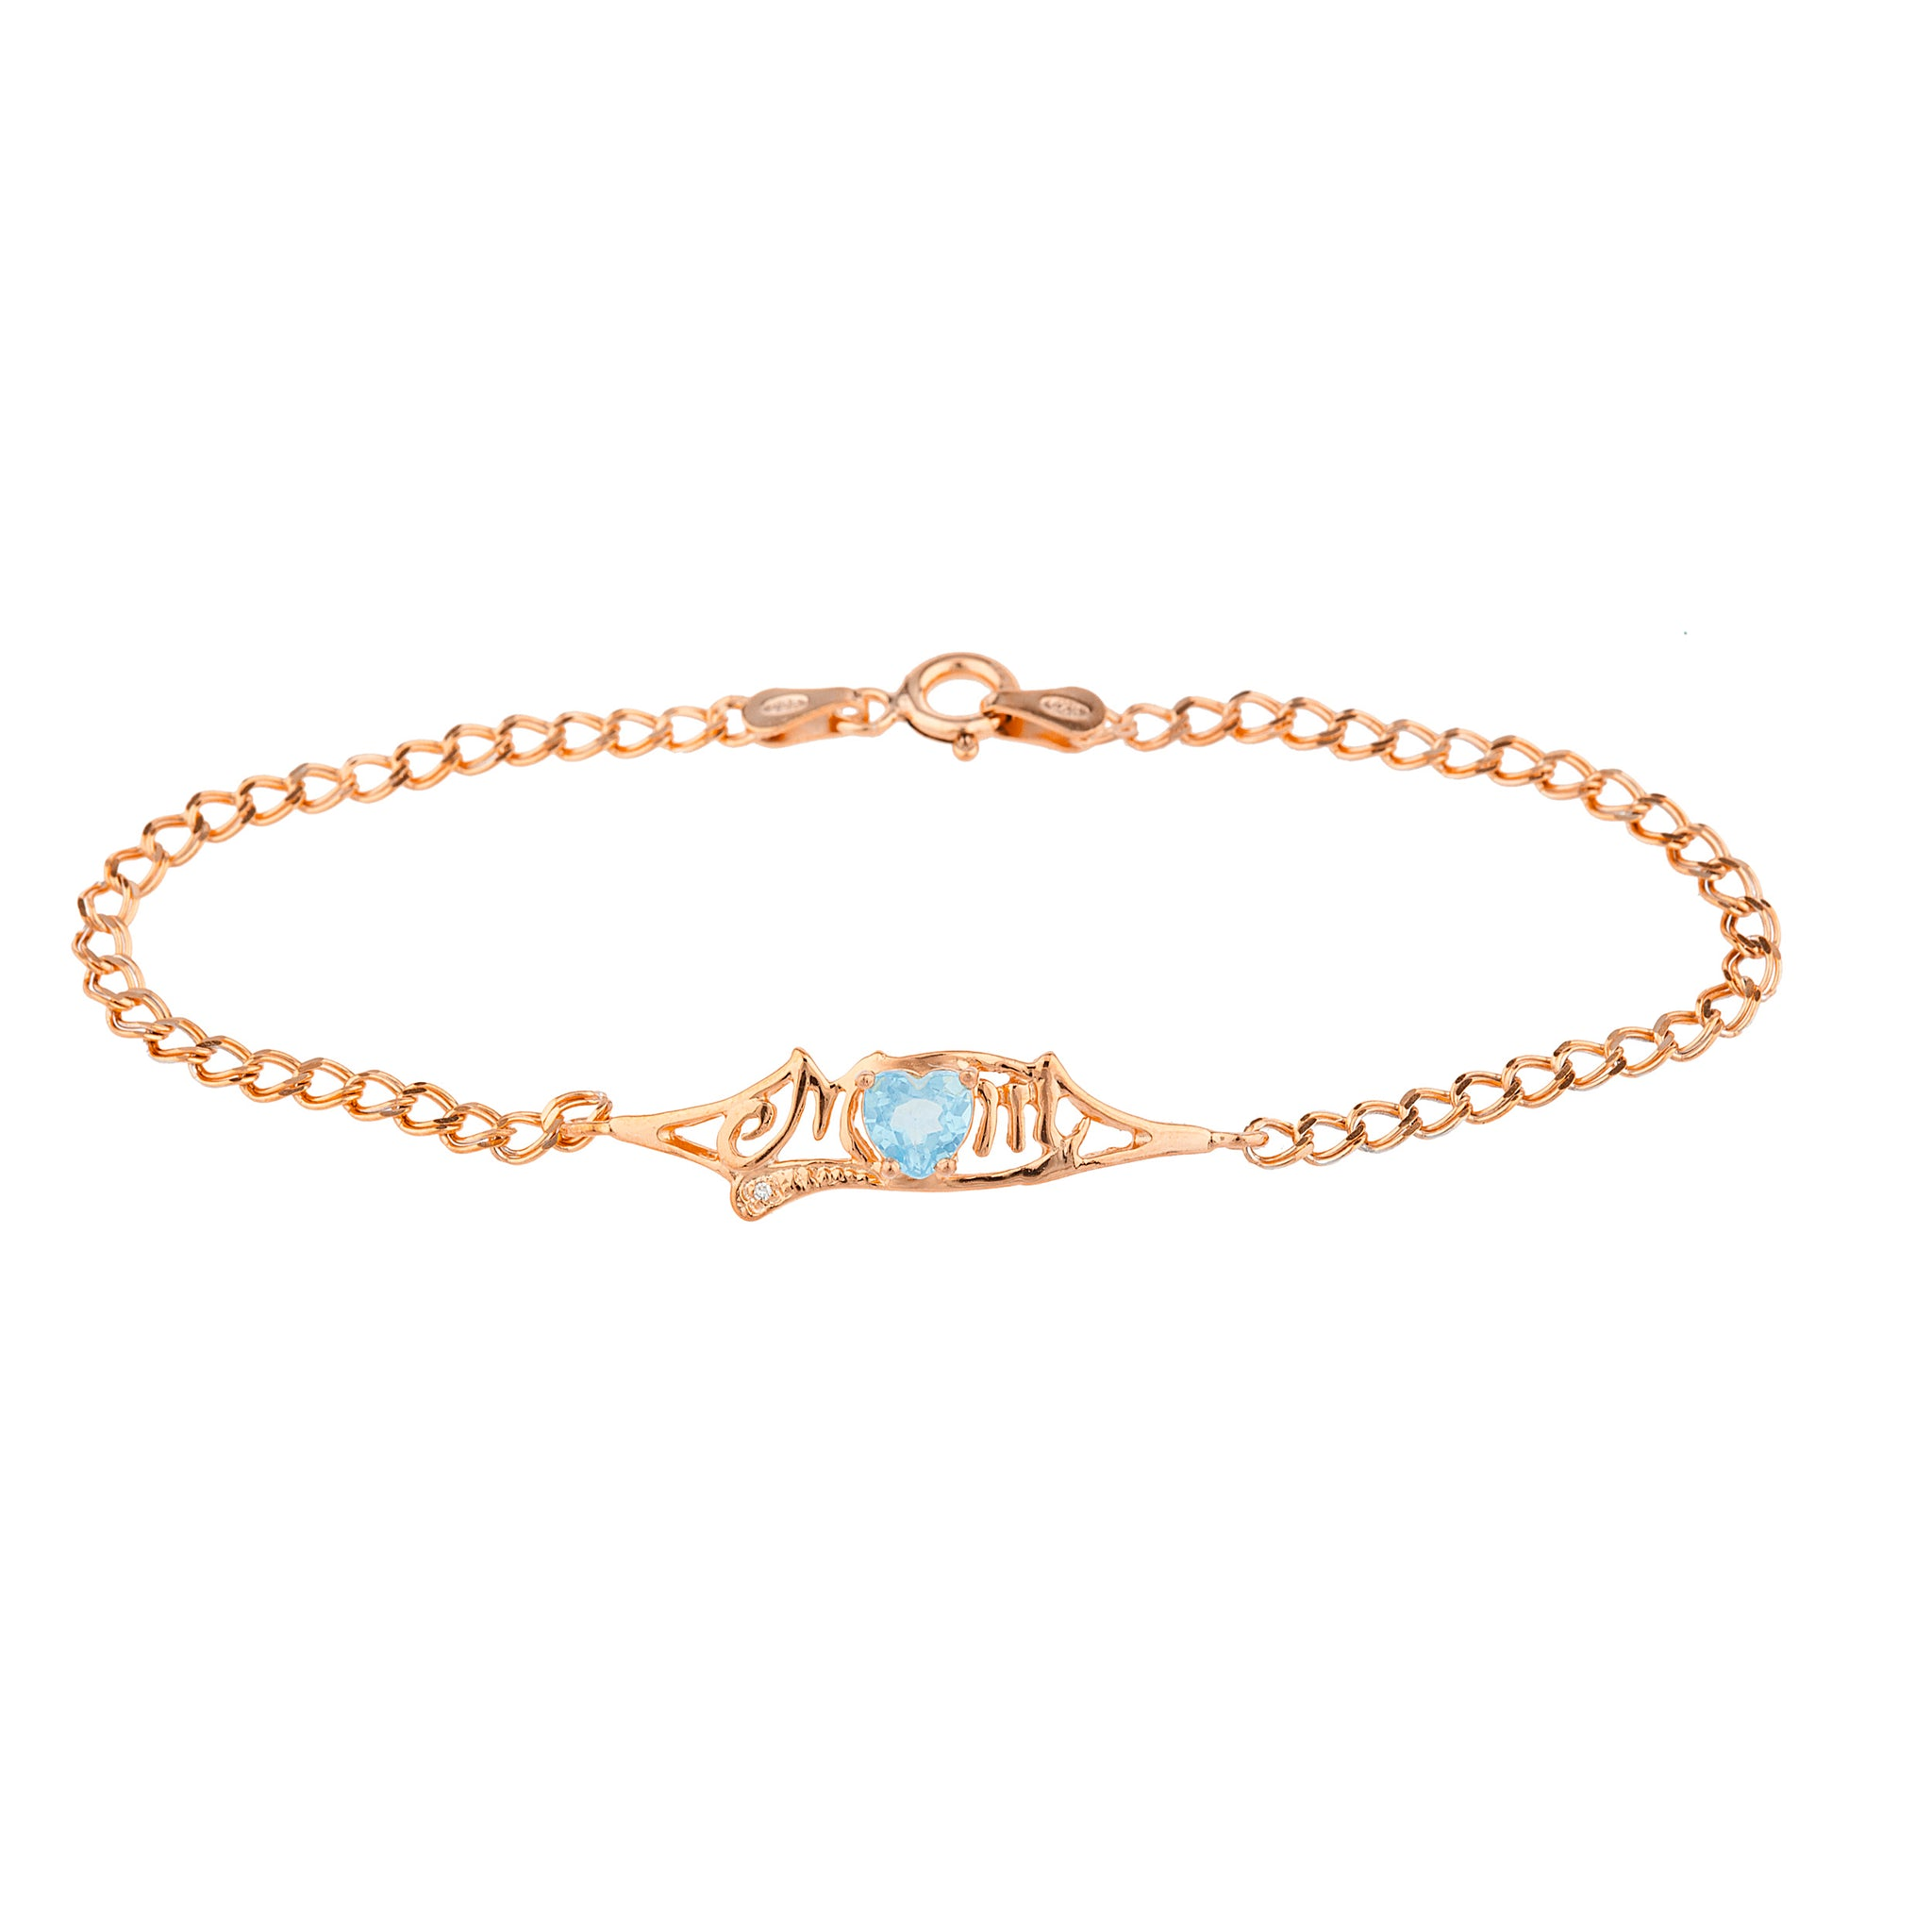 Blue Topaz & Diamond Heart Mom Bracelet 14Kt Rose Gold Plated Over .925 Sterling Silver